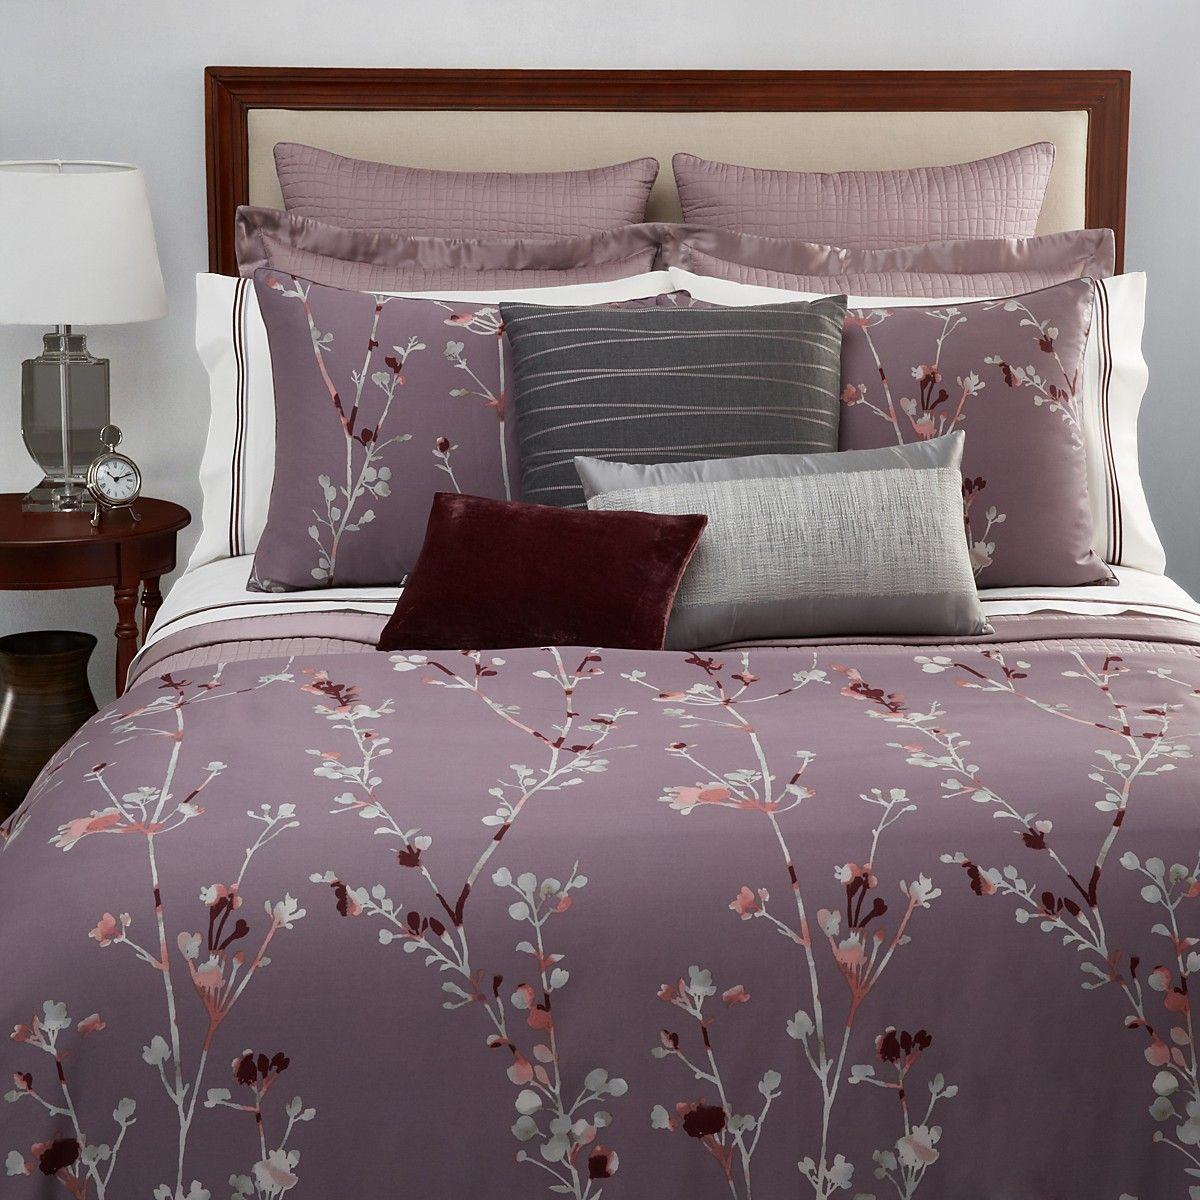 Bedding jardin collection bedding collections bed amp bath macy s - Shop Bedding Towels Luggage Kitchen D Cor And More